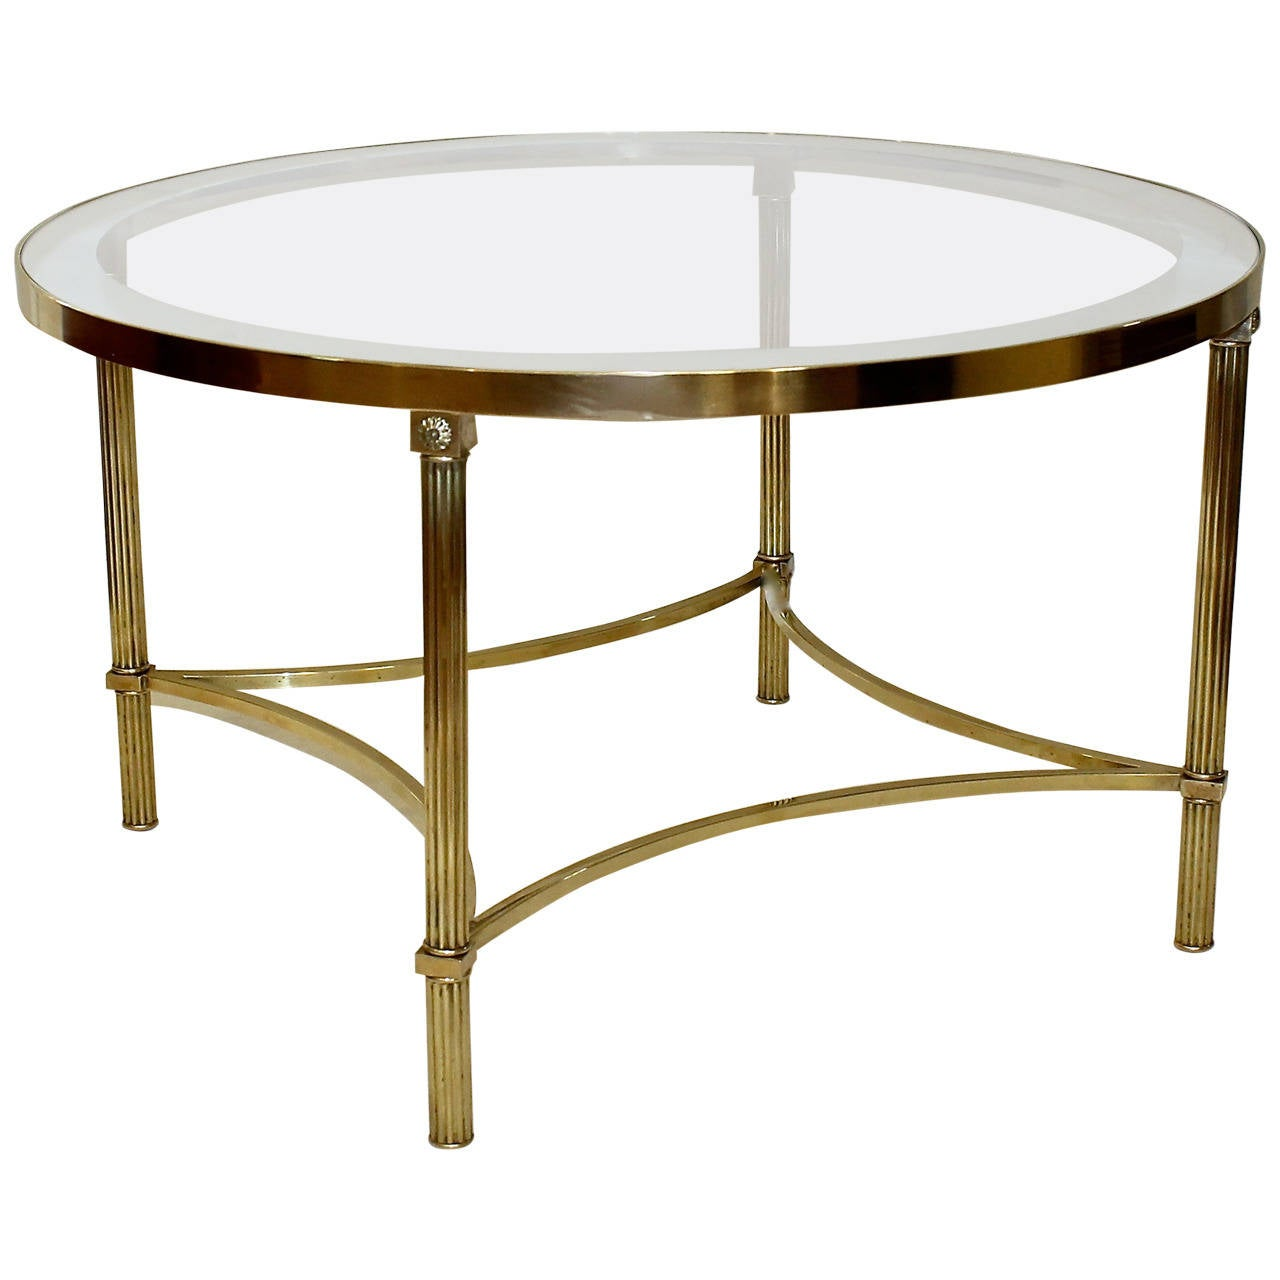 jansen style round brass coffee or cocktail table at 1stdibs. Black Bedroom Furniture Sets. Home Design Ideas